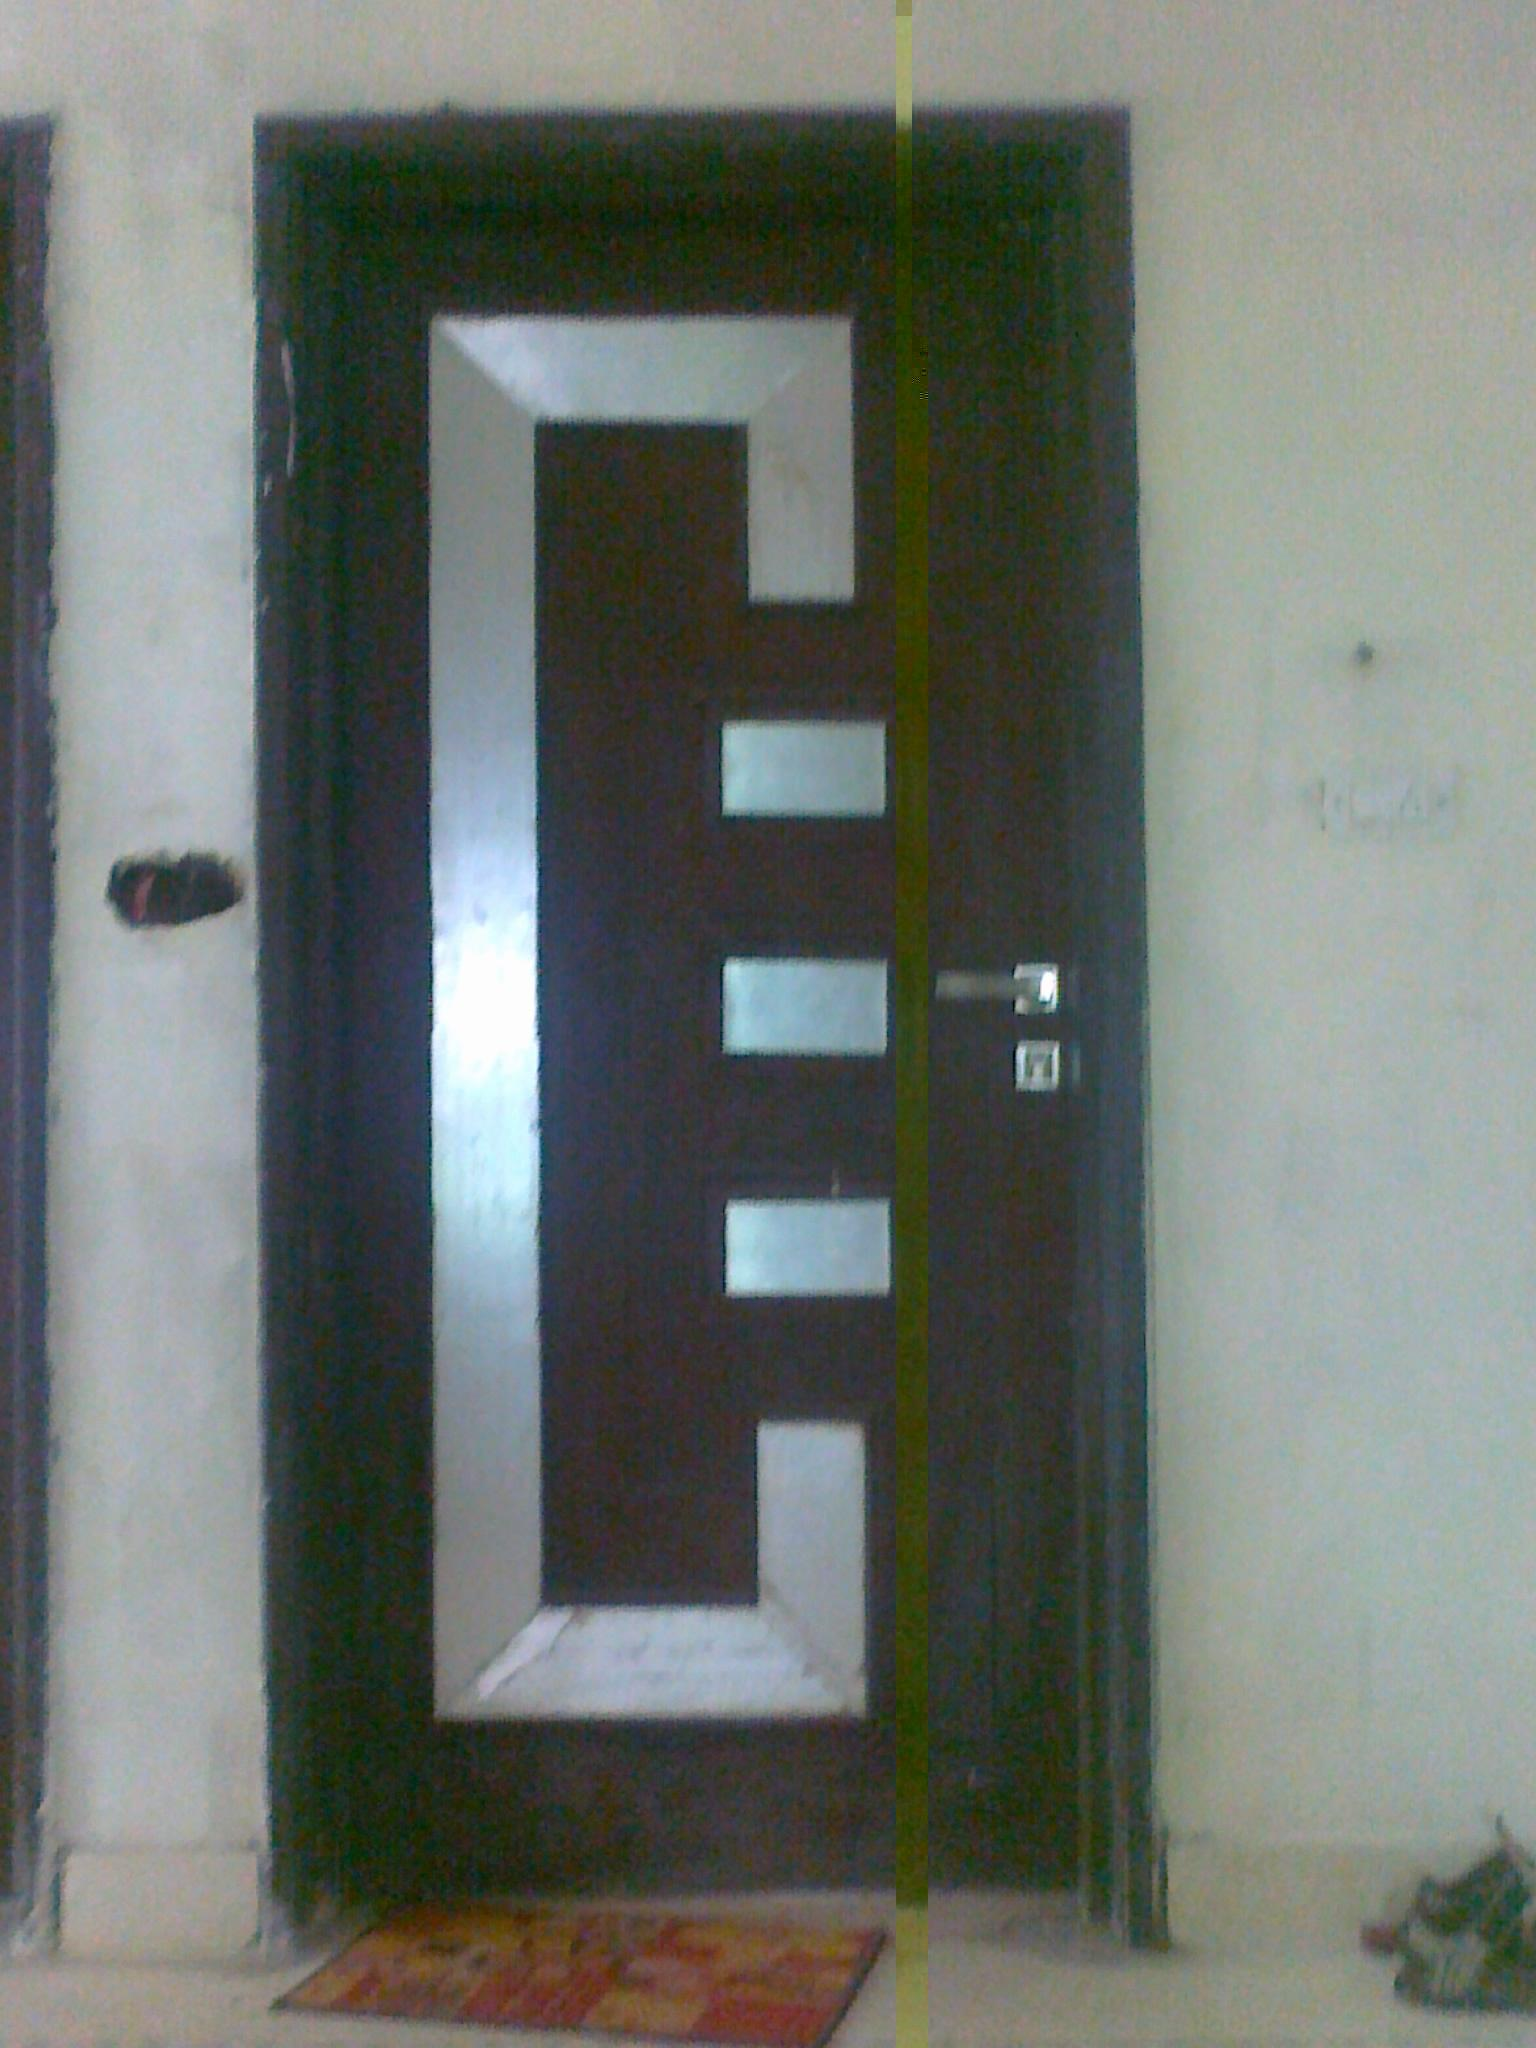 Door design gharexpert for Main door design for flat